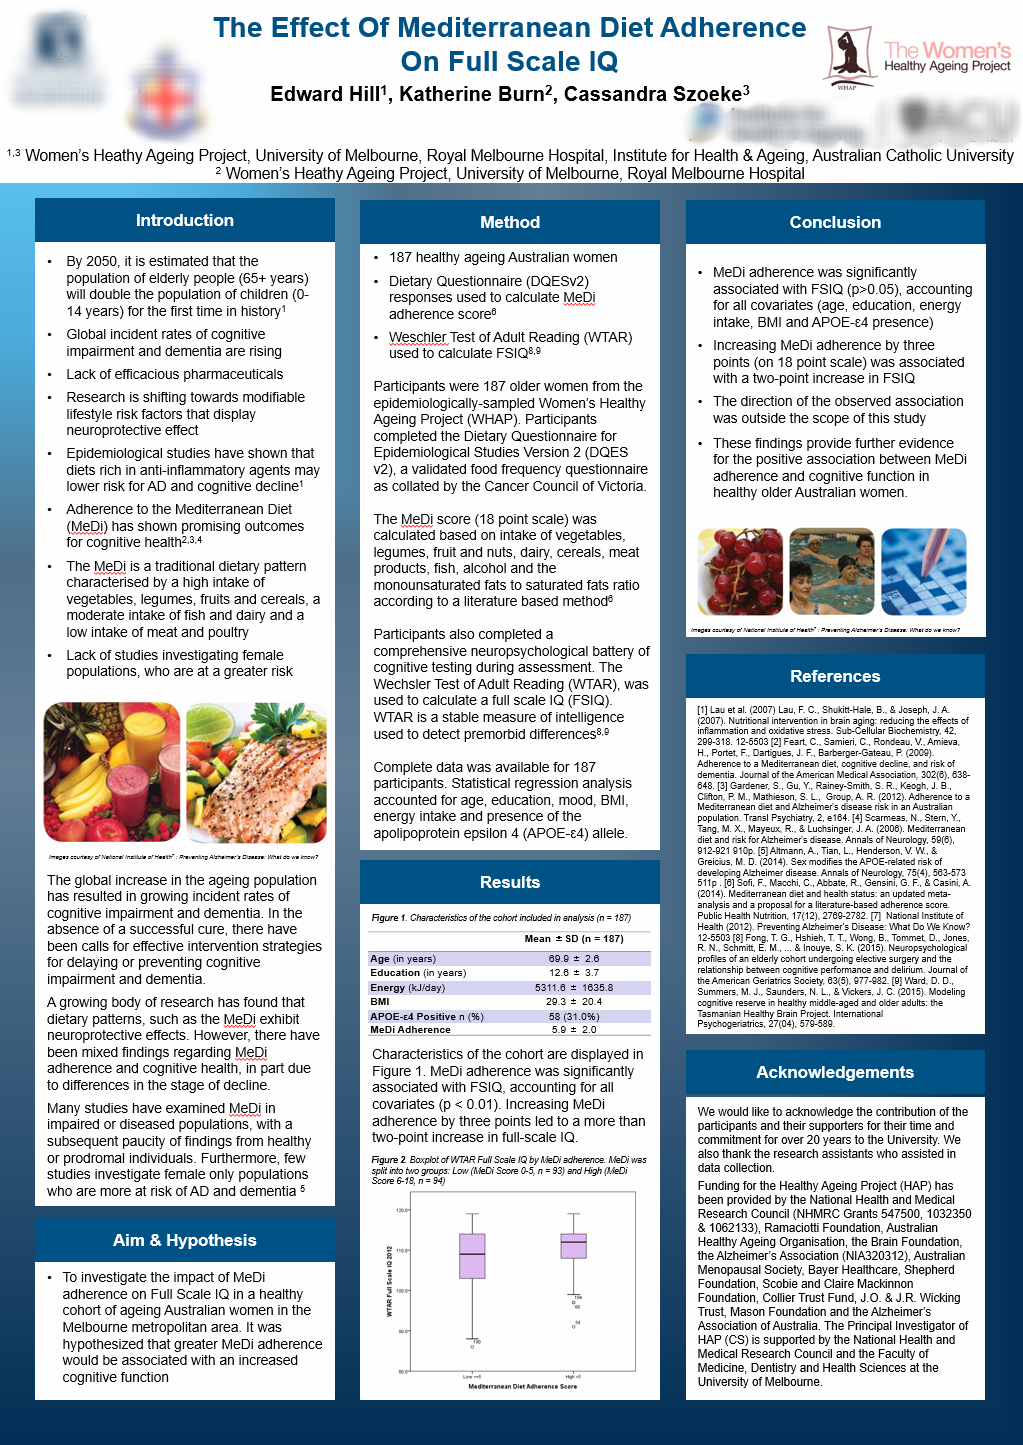 The Effect Of Mediterranean Diet AdherenceOn Full Scale IQ  - A growing body of research has found that dietary patterns, such as the Mediterranean Diet (MeDi) exhibit neuroprotective effects.Many studies have examined MeDi in impaired or diseased populations, with a subsequent paucity of findings from healthy or prodromal individuals. Furthermore, few studies investigate female only populations who are more at risk of AD and dementia. This study investigated the impact of MeDi adherence on Full Scale IQ (FSIQ) in a healthy cohort of ageing Australian women.MeDi adherence was significantly associated with FSIQ, accounting for all covariates.Increasing MeDi adherence by three points (on 18 point scale) was associated with a two-point increase in FSIQ.Citation: Hill, E., et al. (2017).The effect of Mediterranean diet adherence on Full Scale IQ. Poster presented at the International Convention of Psychological Science, Vienna, Austria, 23-25 March.